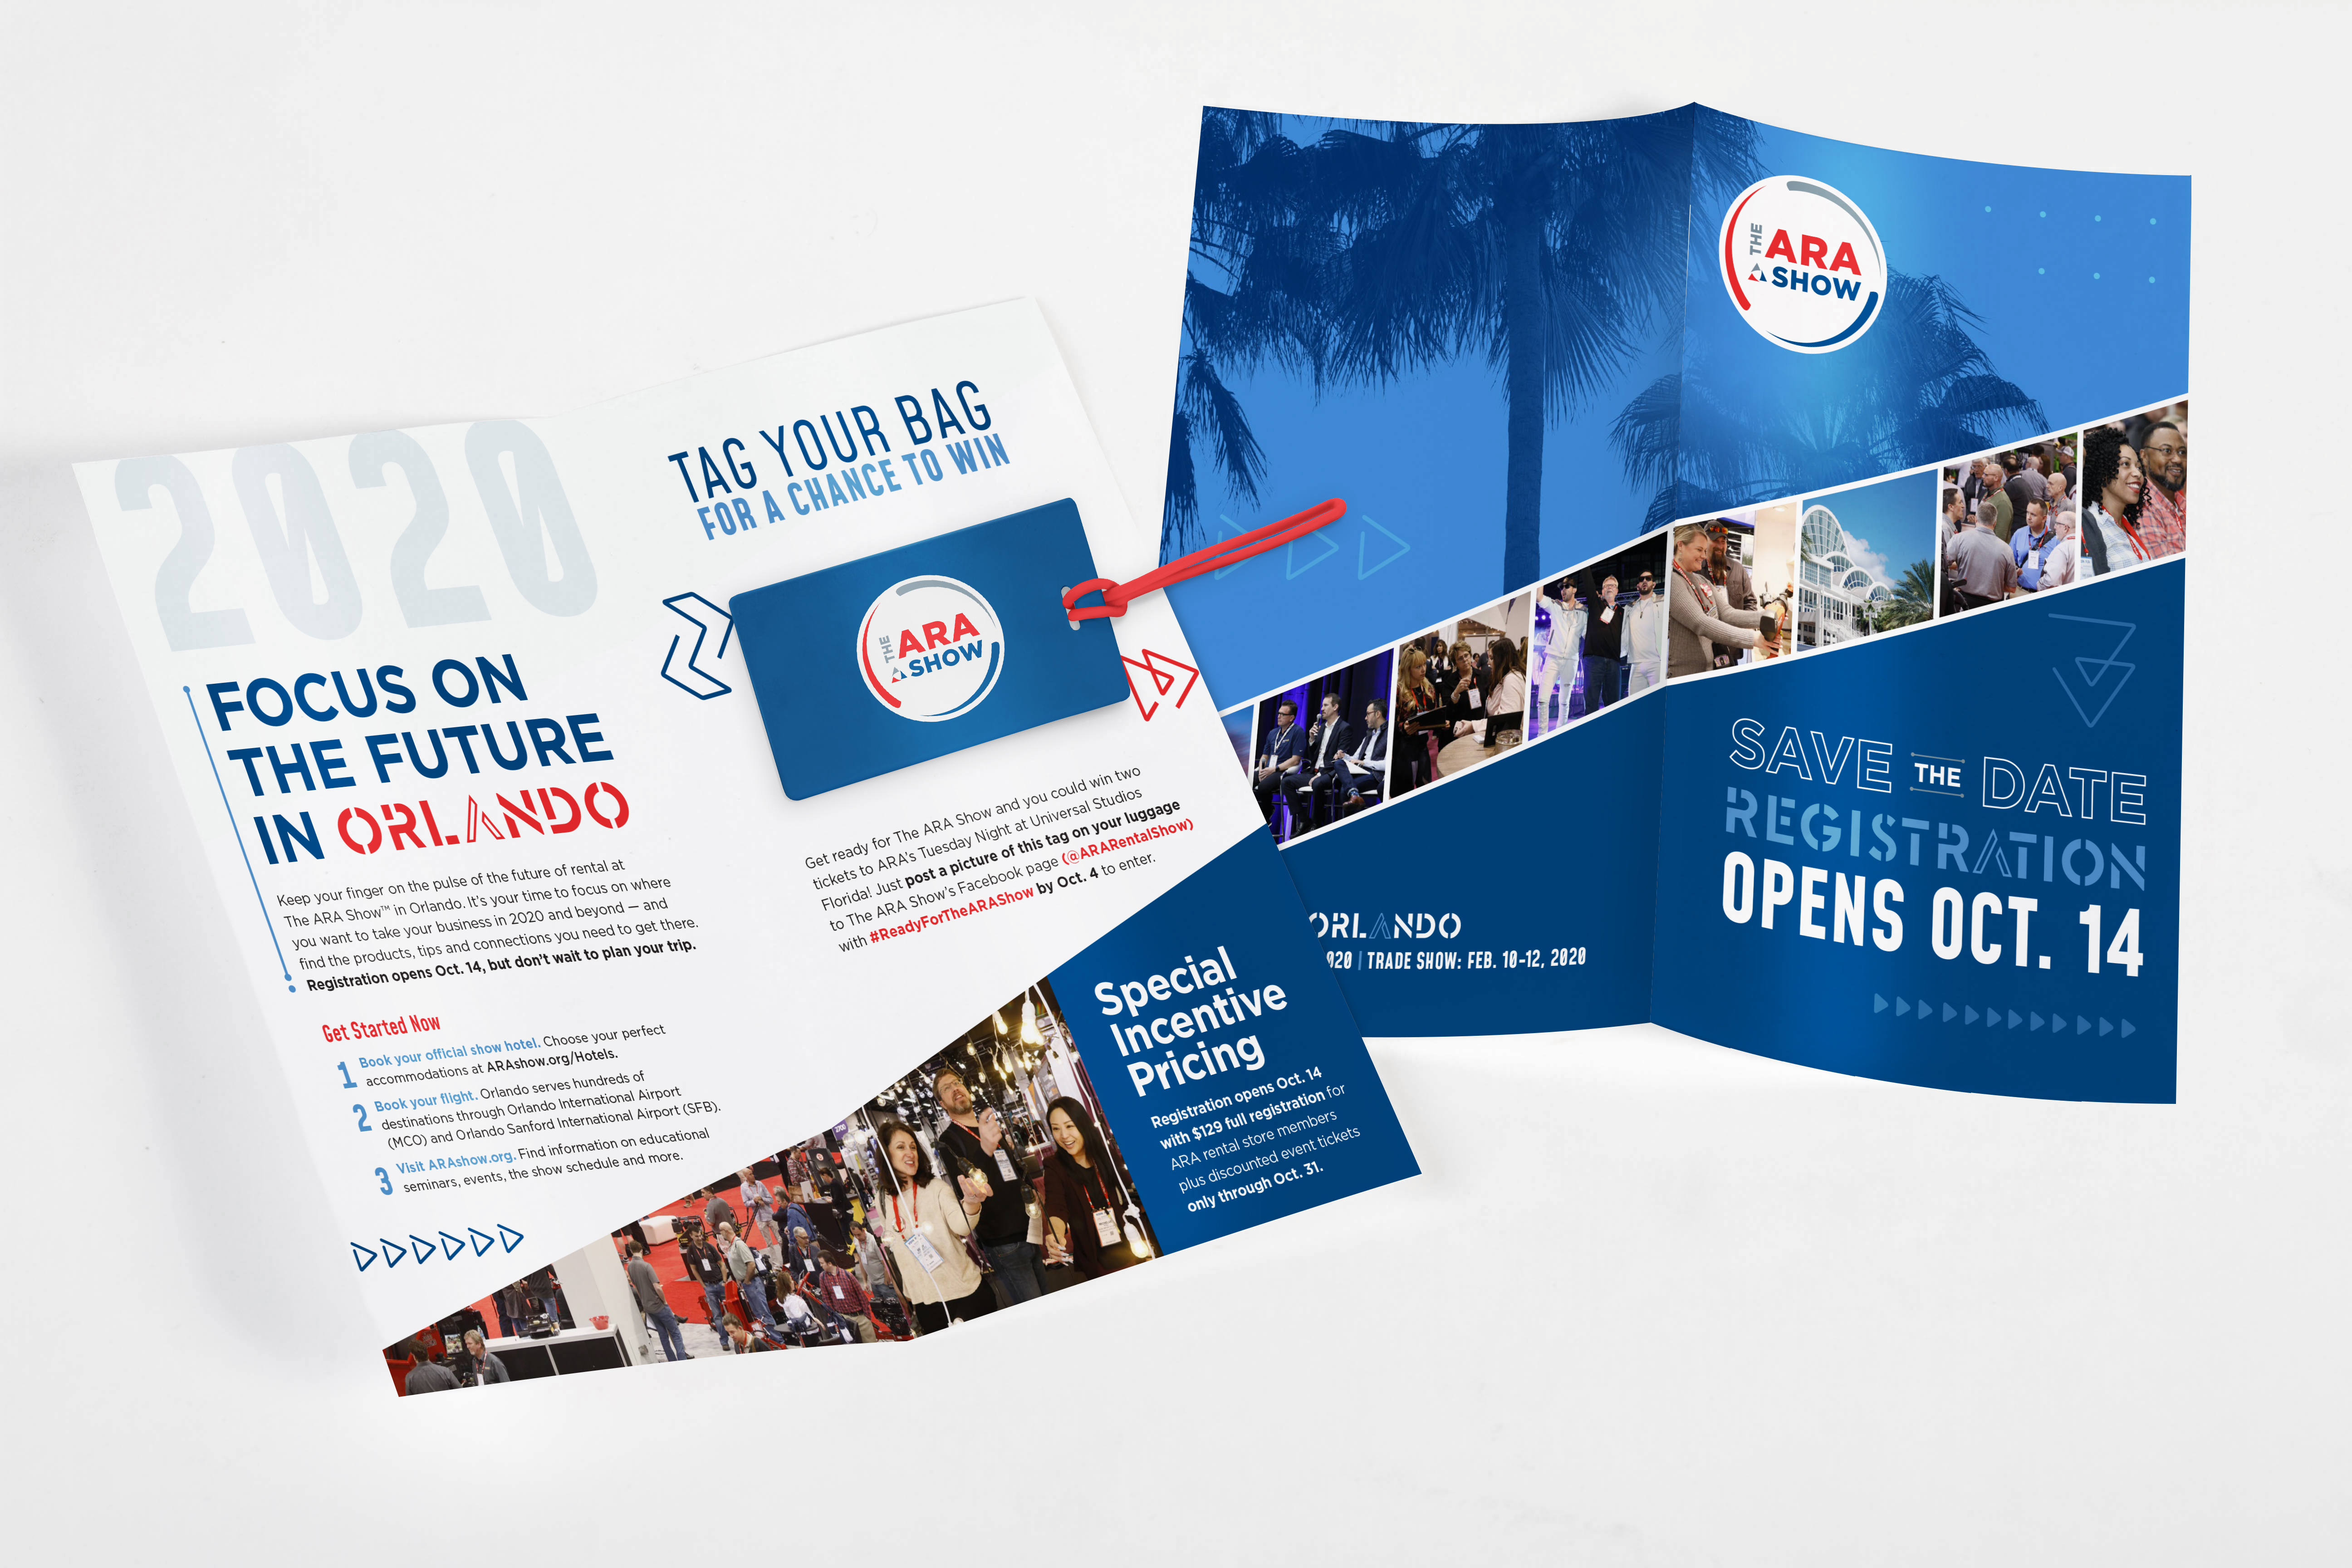 ARA Show 2020 direct mail front and back shown overlapped on a grey background.